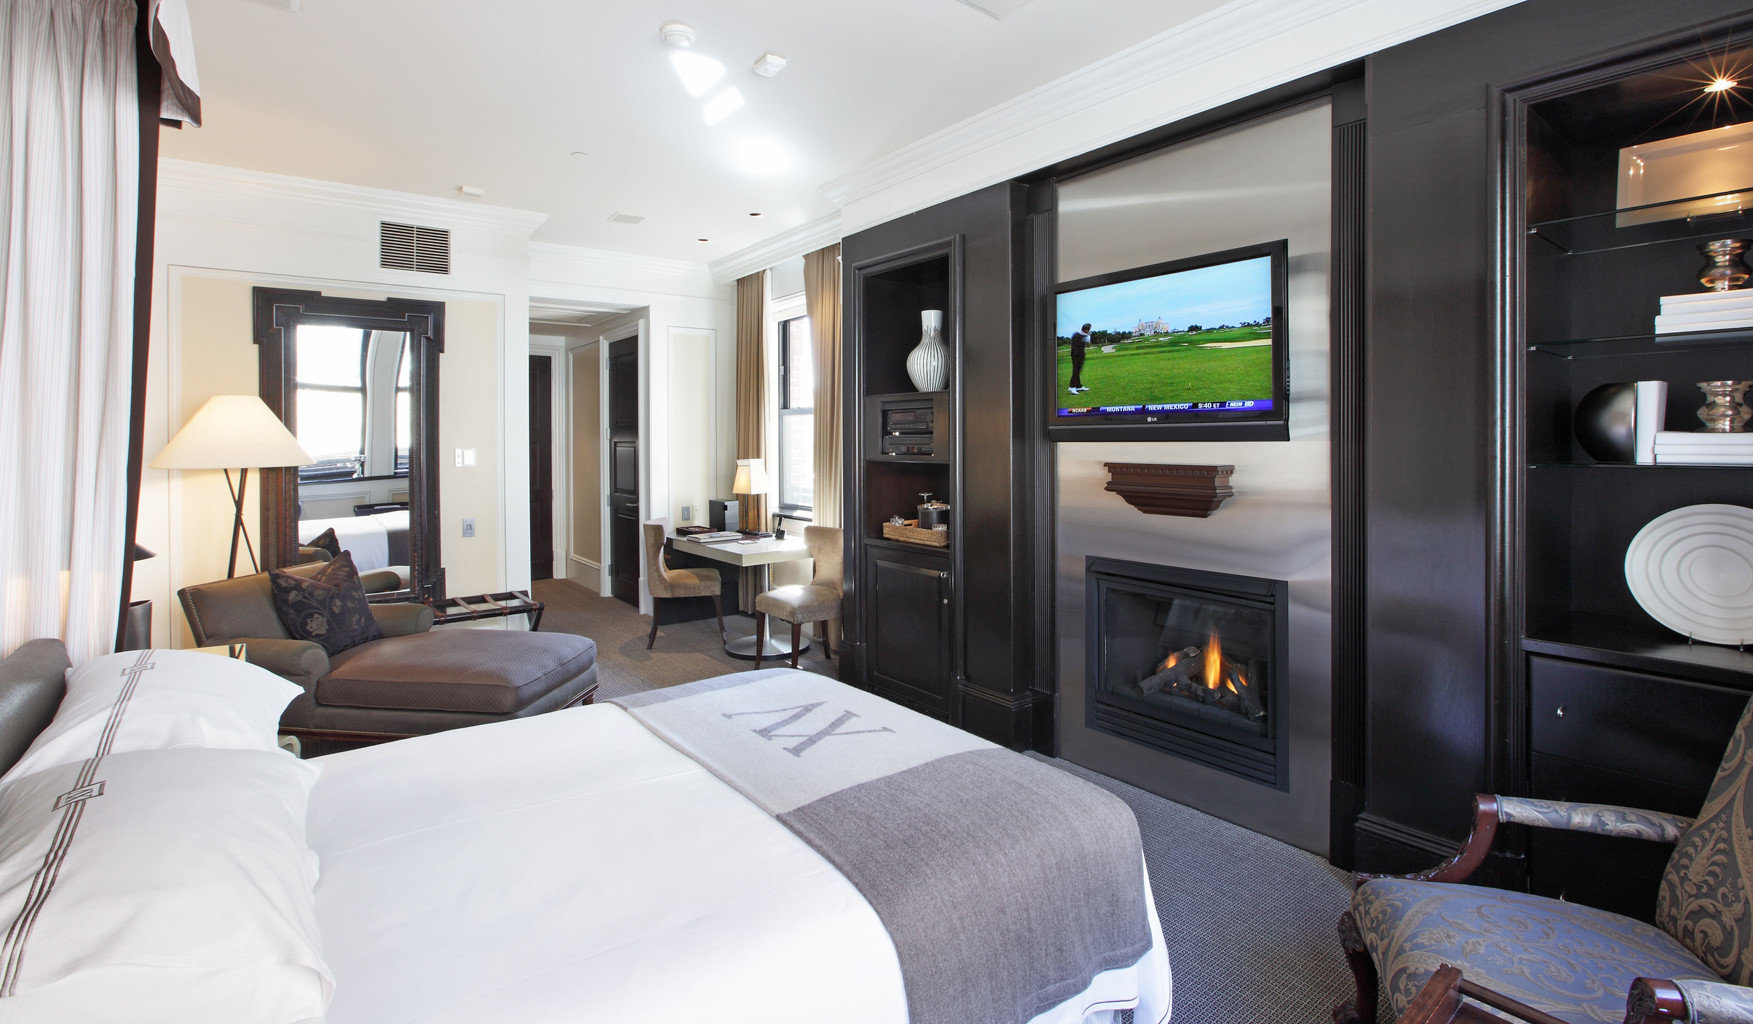 Bedroom Business Fireplace Historic Luxury Modern Romantic property home condominium living room Suite vehicle cottage flat